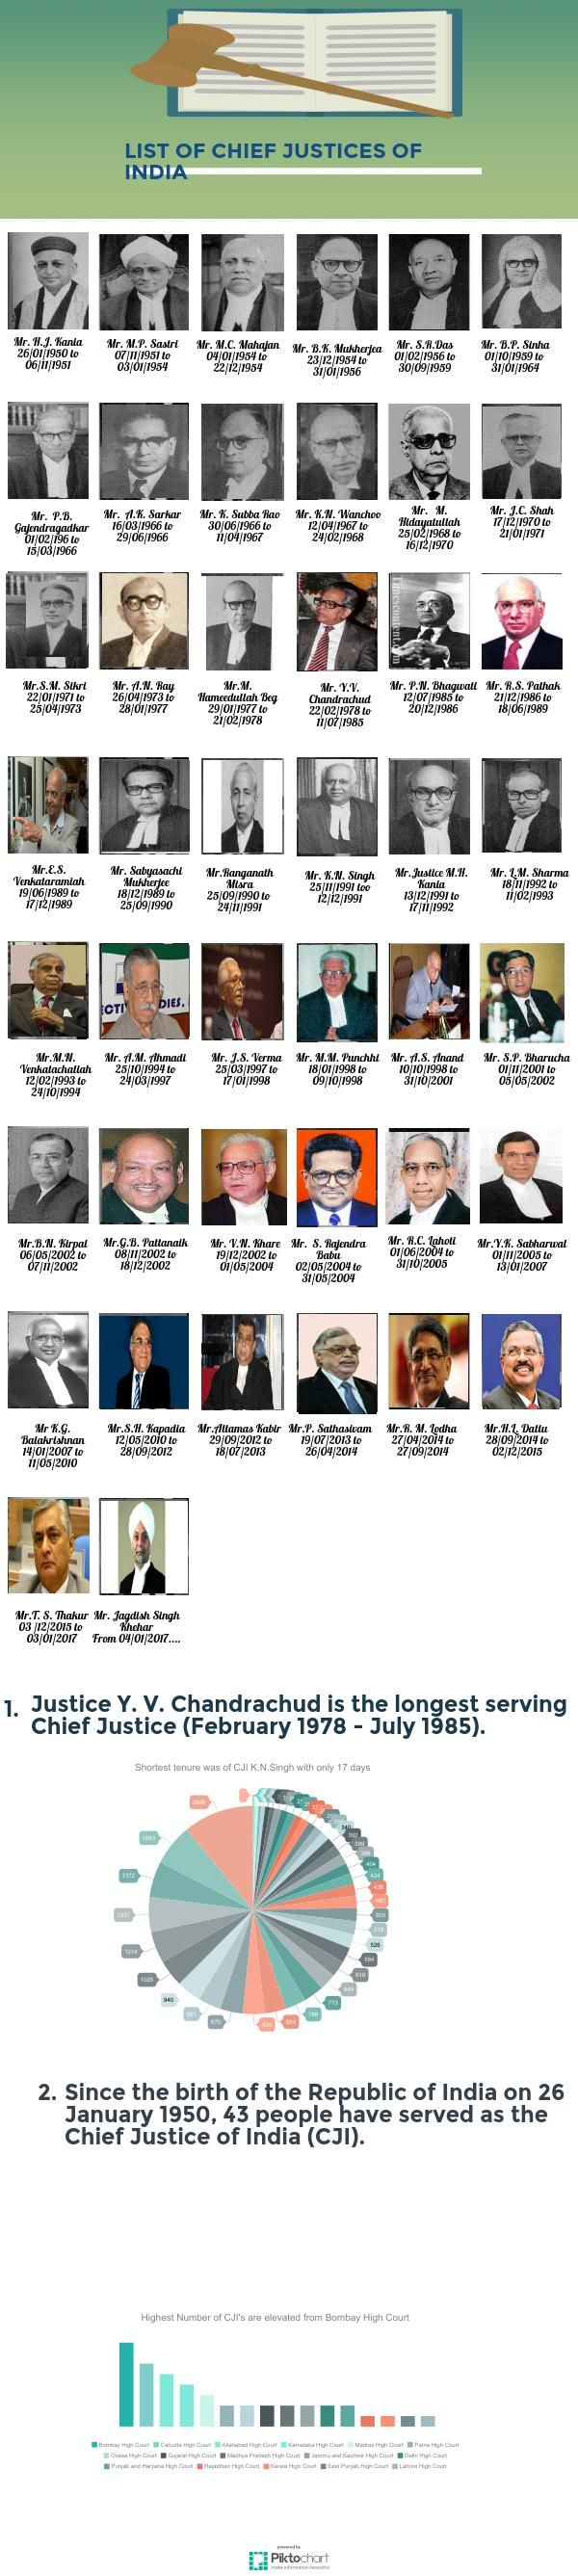 List of Chief Justices in India | @Piktochart Infographic